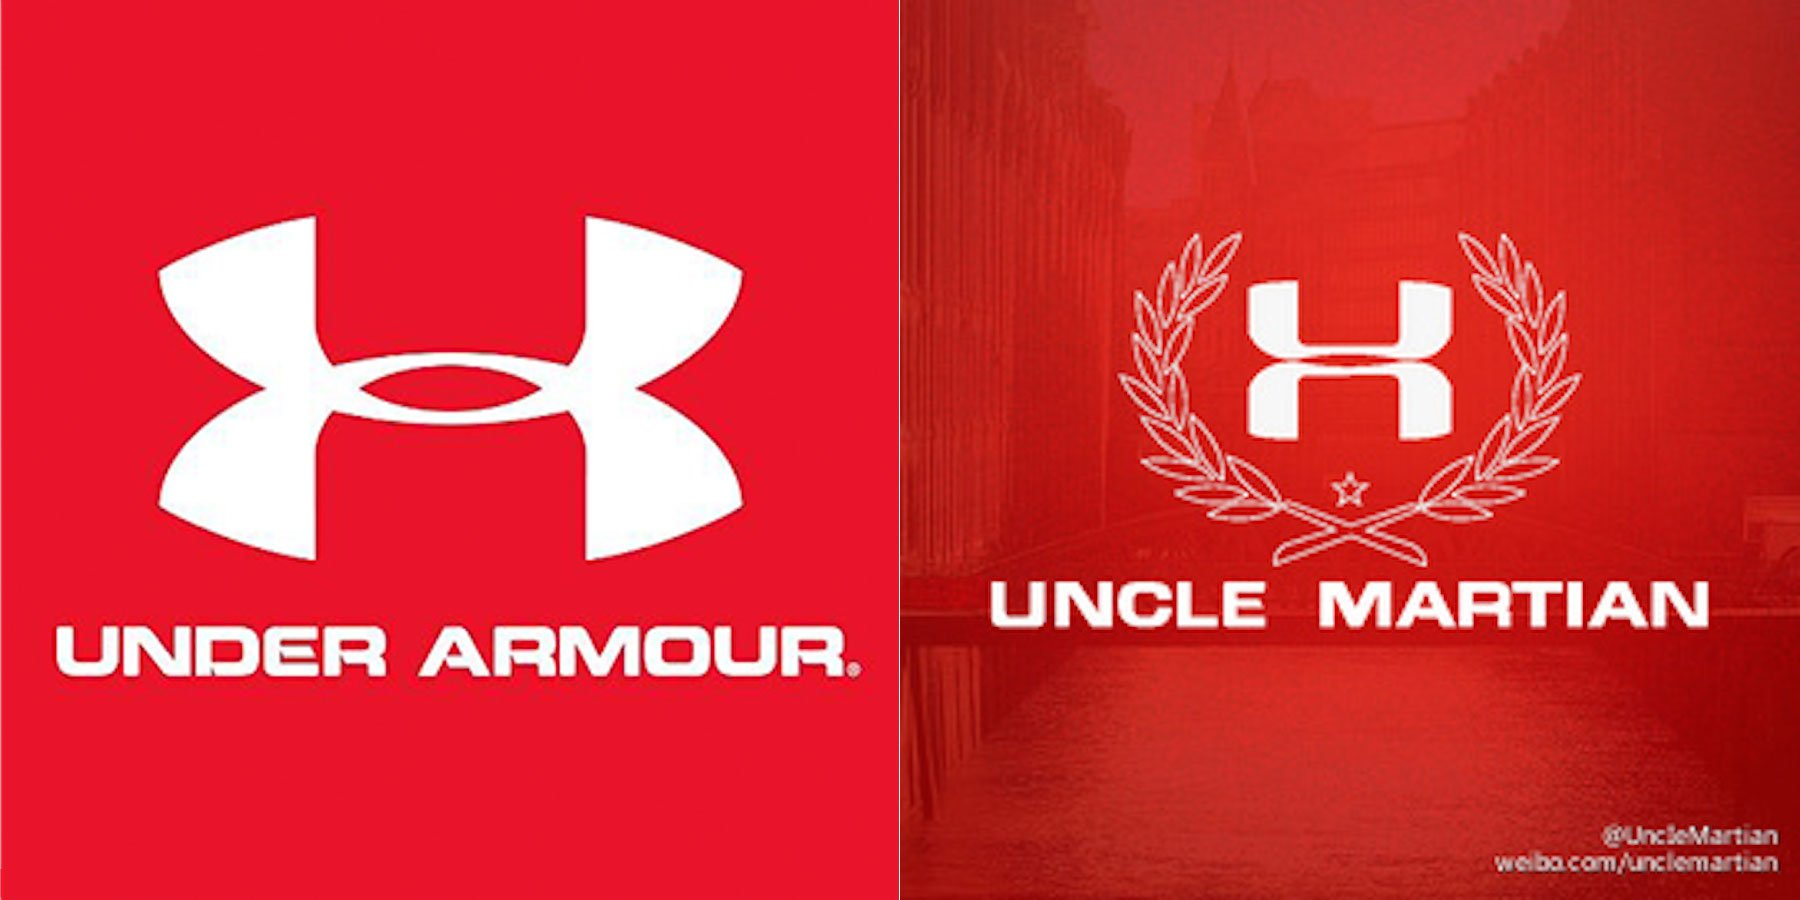 under armour uncle martian